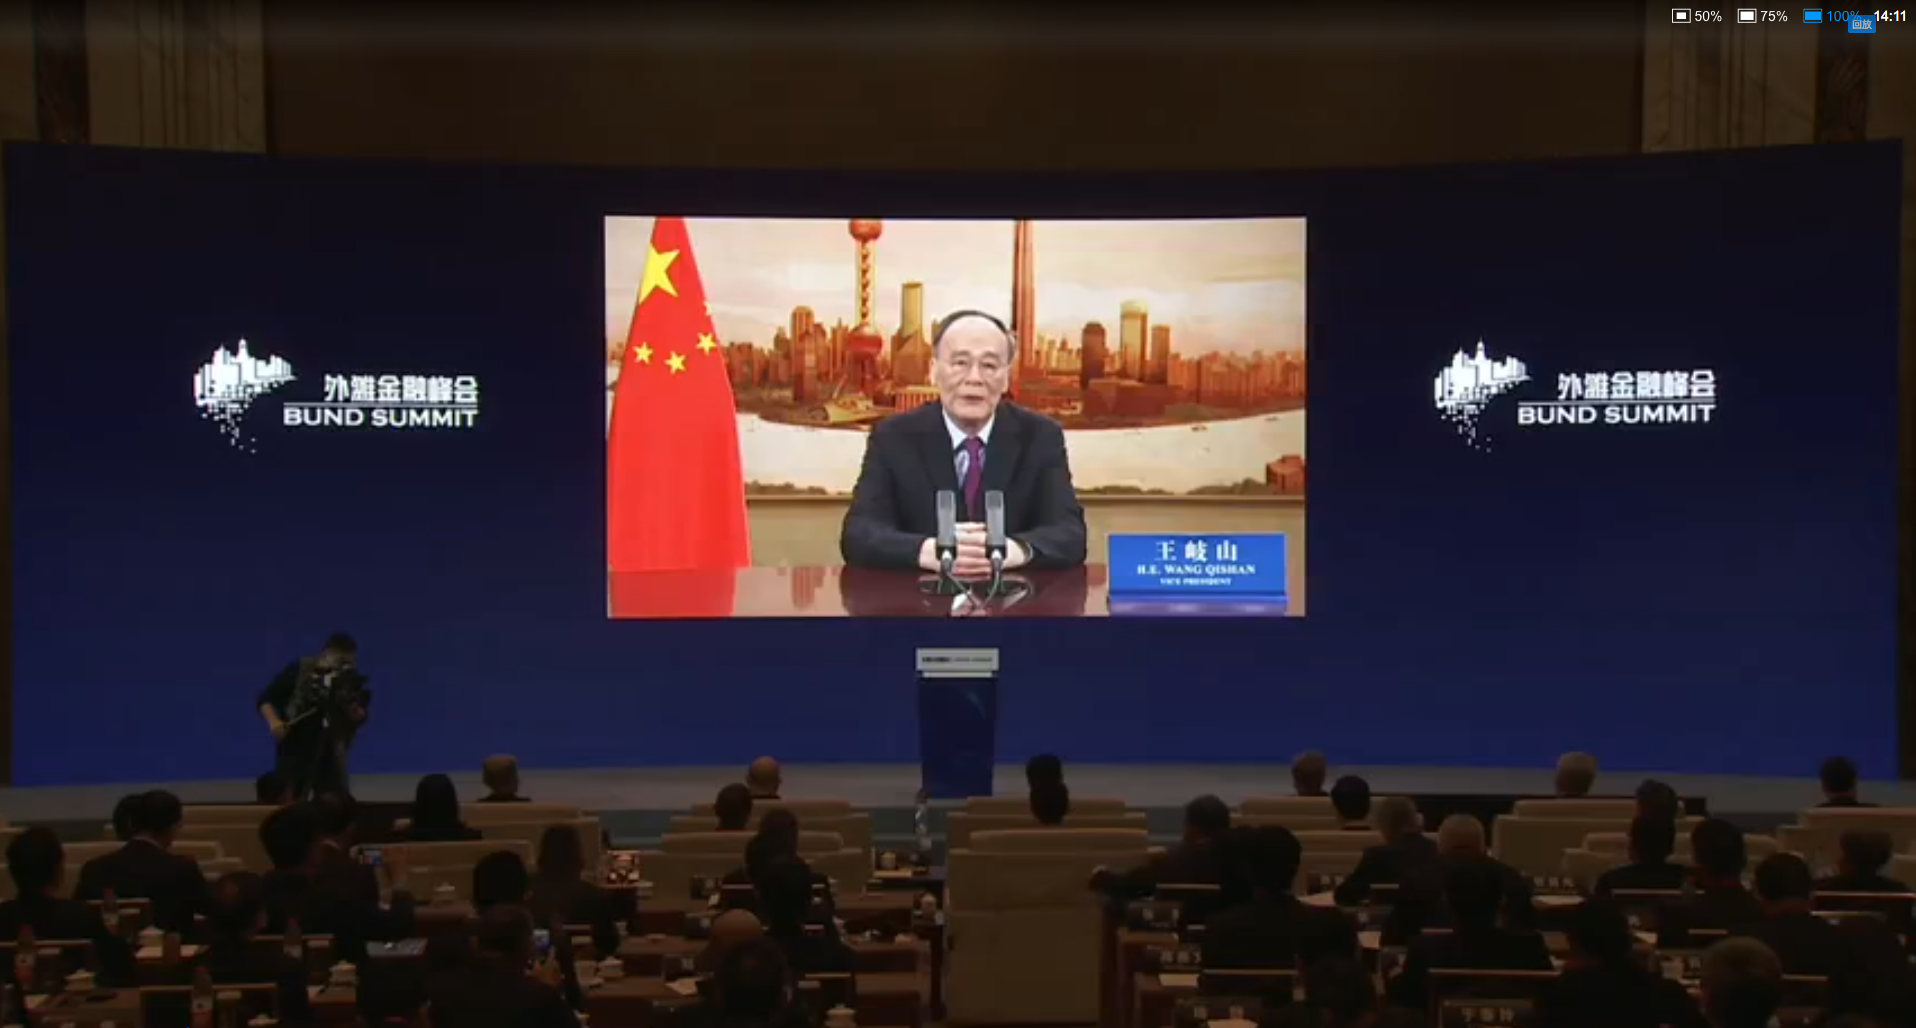 Vice President Wang Qishan's pre-recorded speech is played to attendees at the Bund Summit in Shanghai on Oct. 24.